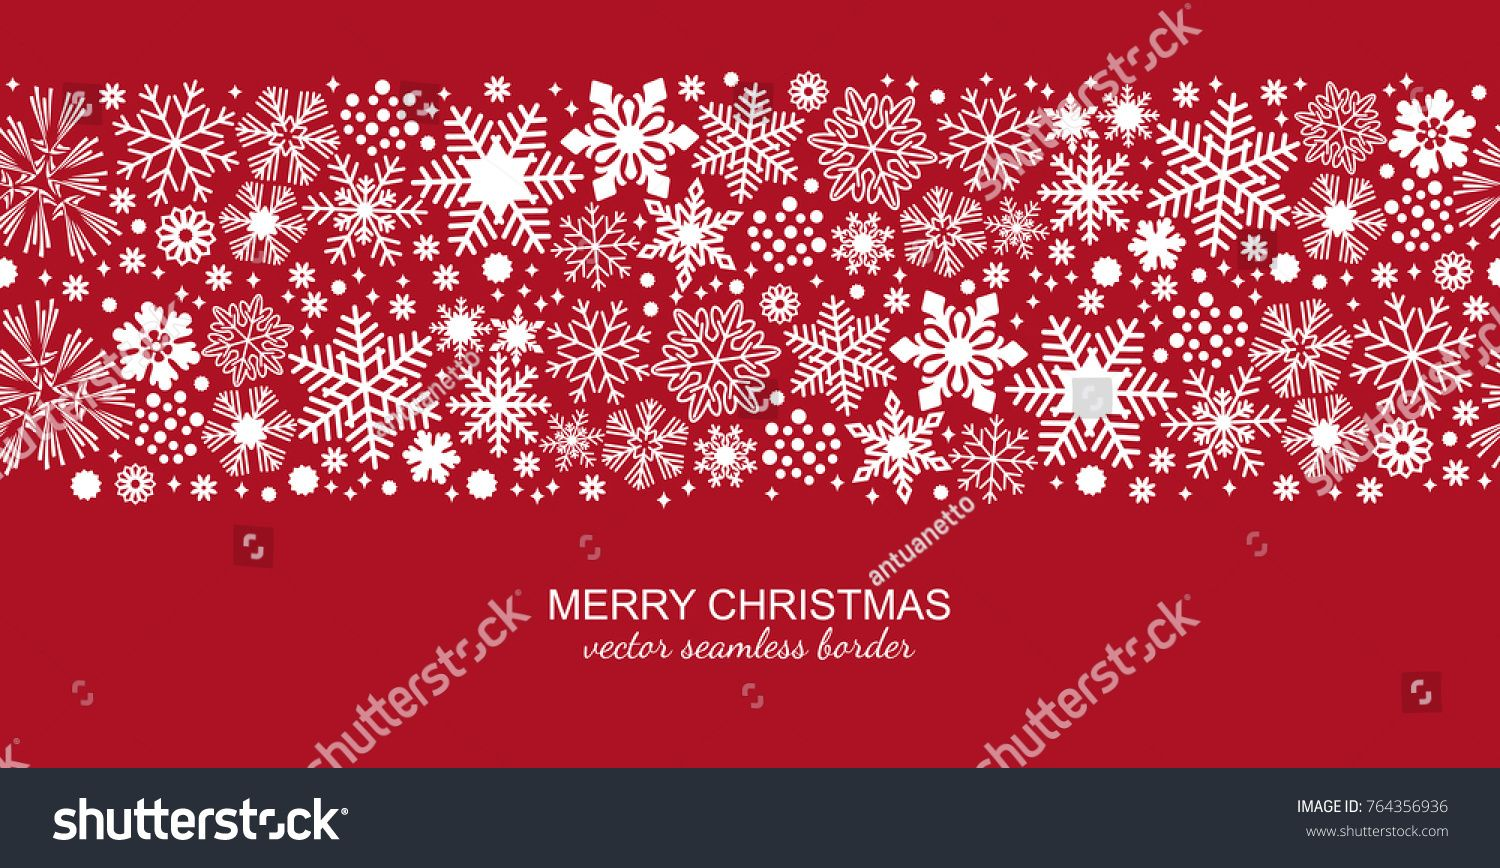 White Seamless Snowflake Border Isolated On Red Background Christmas Design For Postcard Or Greeting Card Vector Illustration Merry Xmas Snow Flake